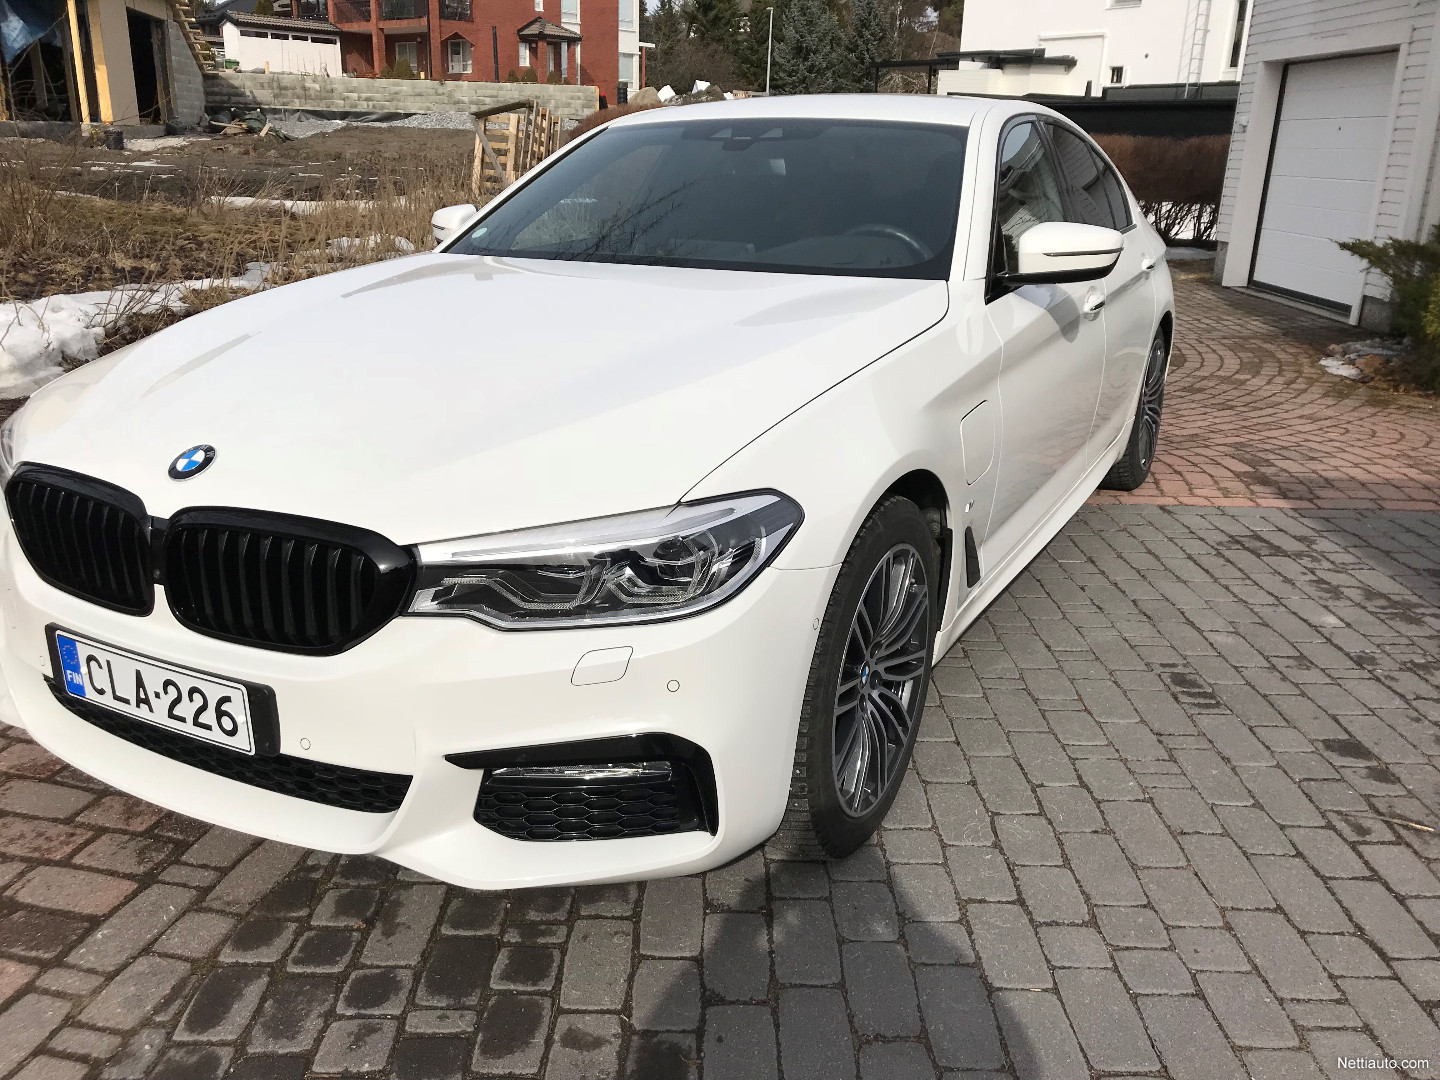 BMW 530 M-Sport Sedan 2017 - Used vehicle - Nettiauto